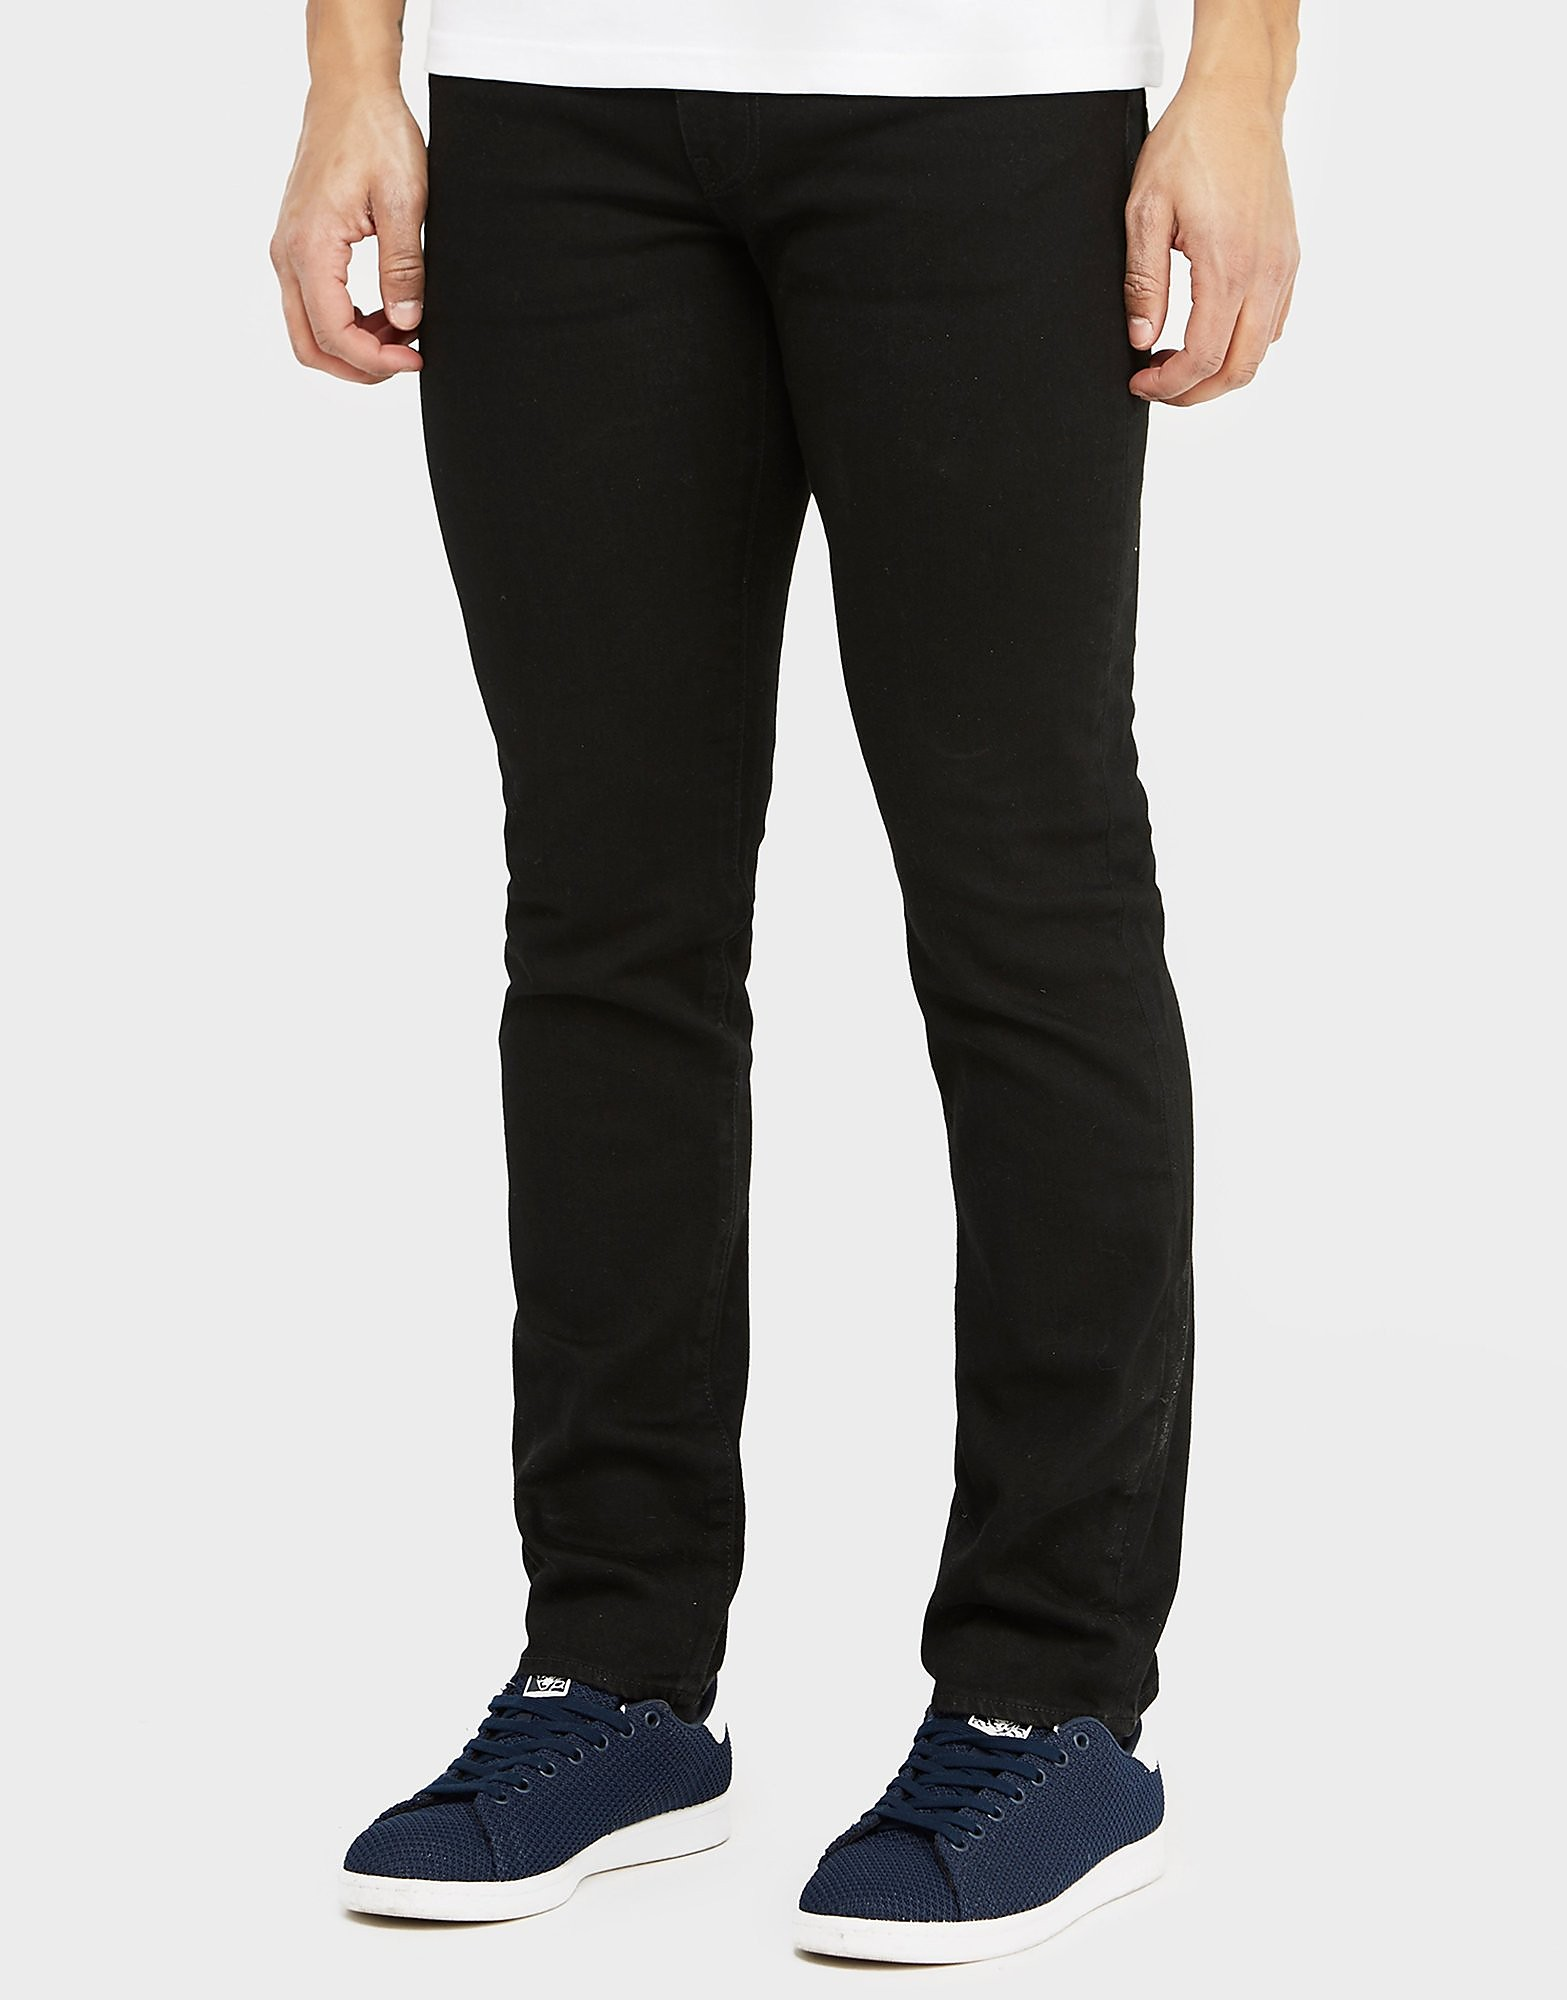 Levis 511 Nightshine Slim Fit Jean